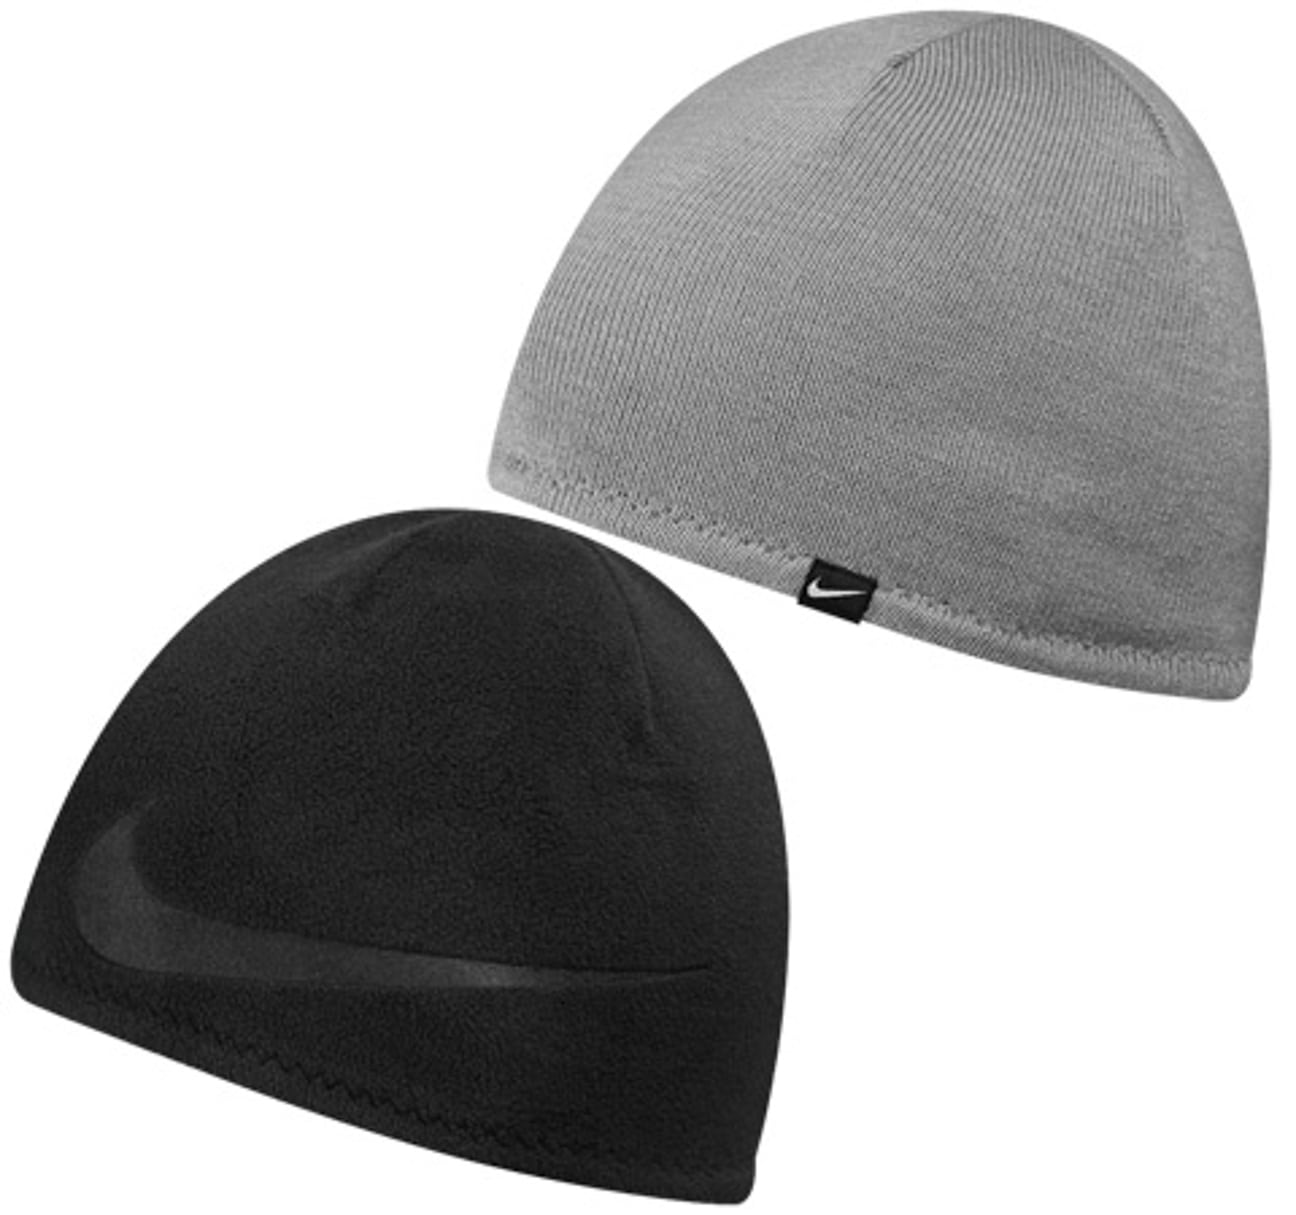 9f254361193 Emboss Fleece Reversible Hat by Nike, EUR 14,95 --> Hats, caps ...